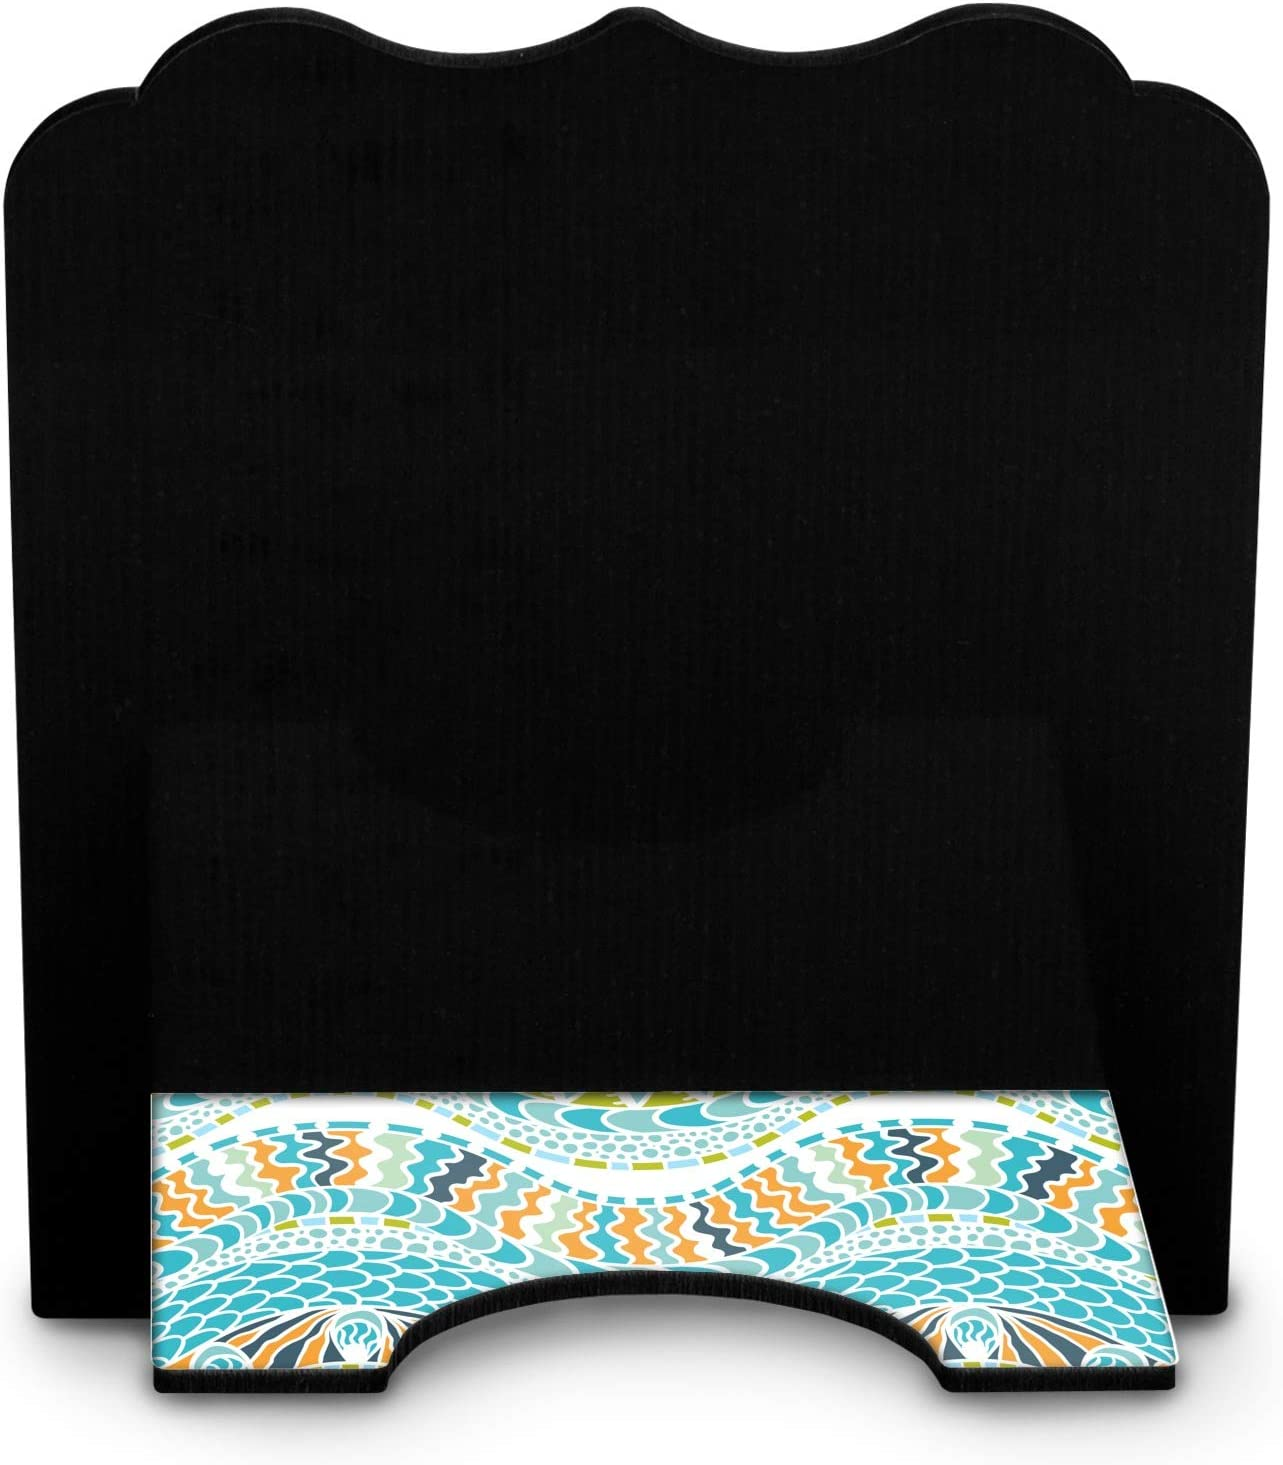 Personalized YouCustomizeIt Teal Ribbons /& Labels Stylized Tablet Stand